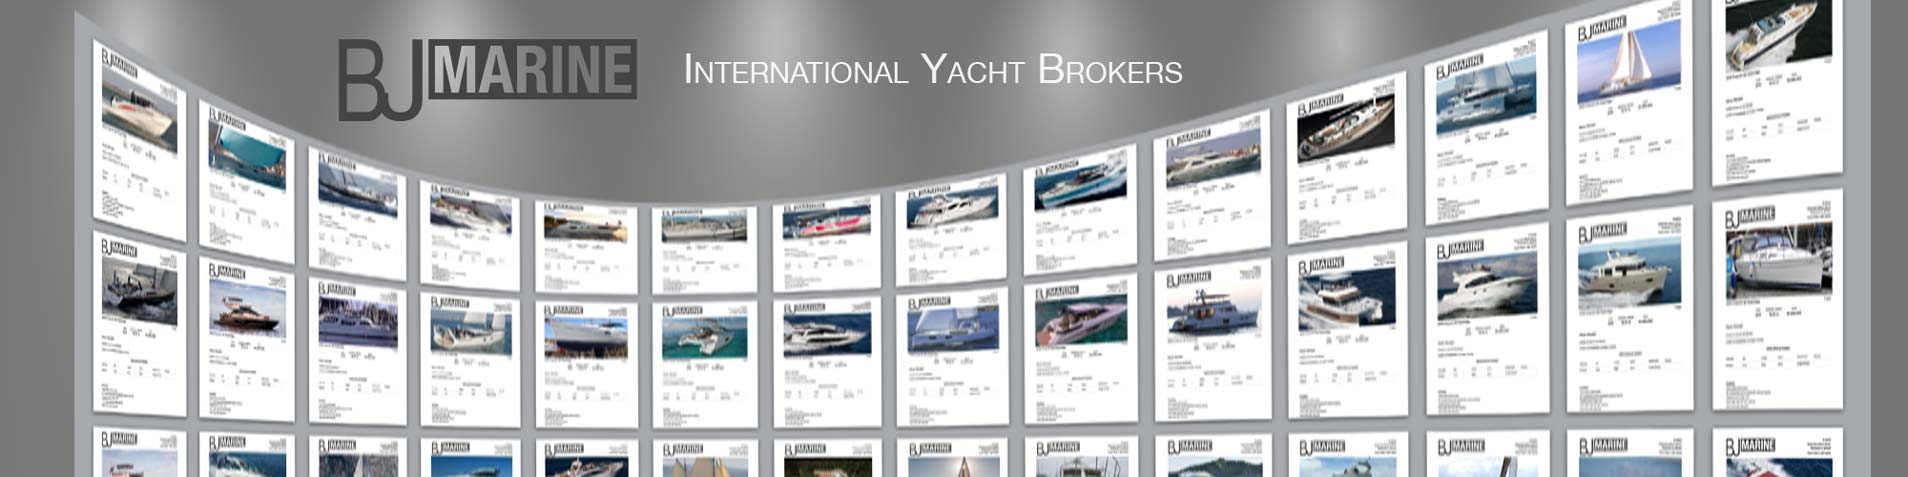 Sell your boat with expert international yacht broker BJ Marine We sell sail boats, yachts, power boats, cruisers and more